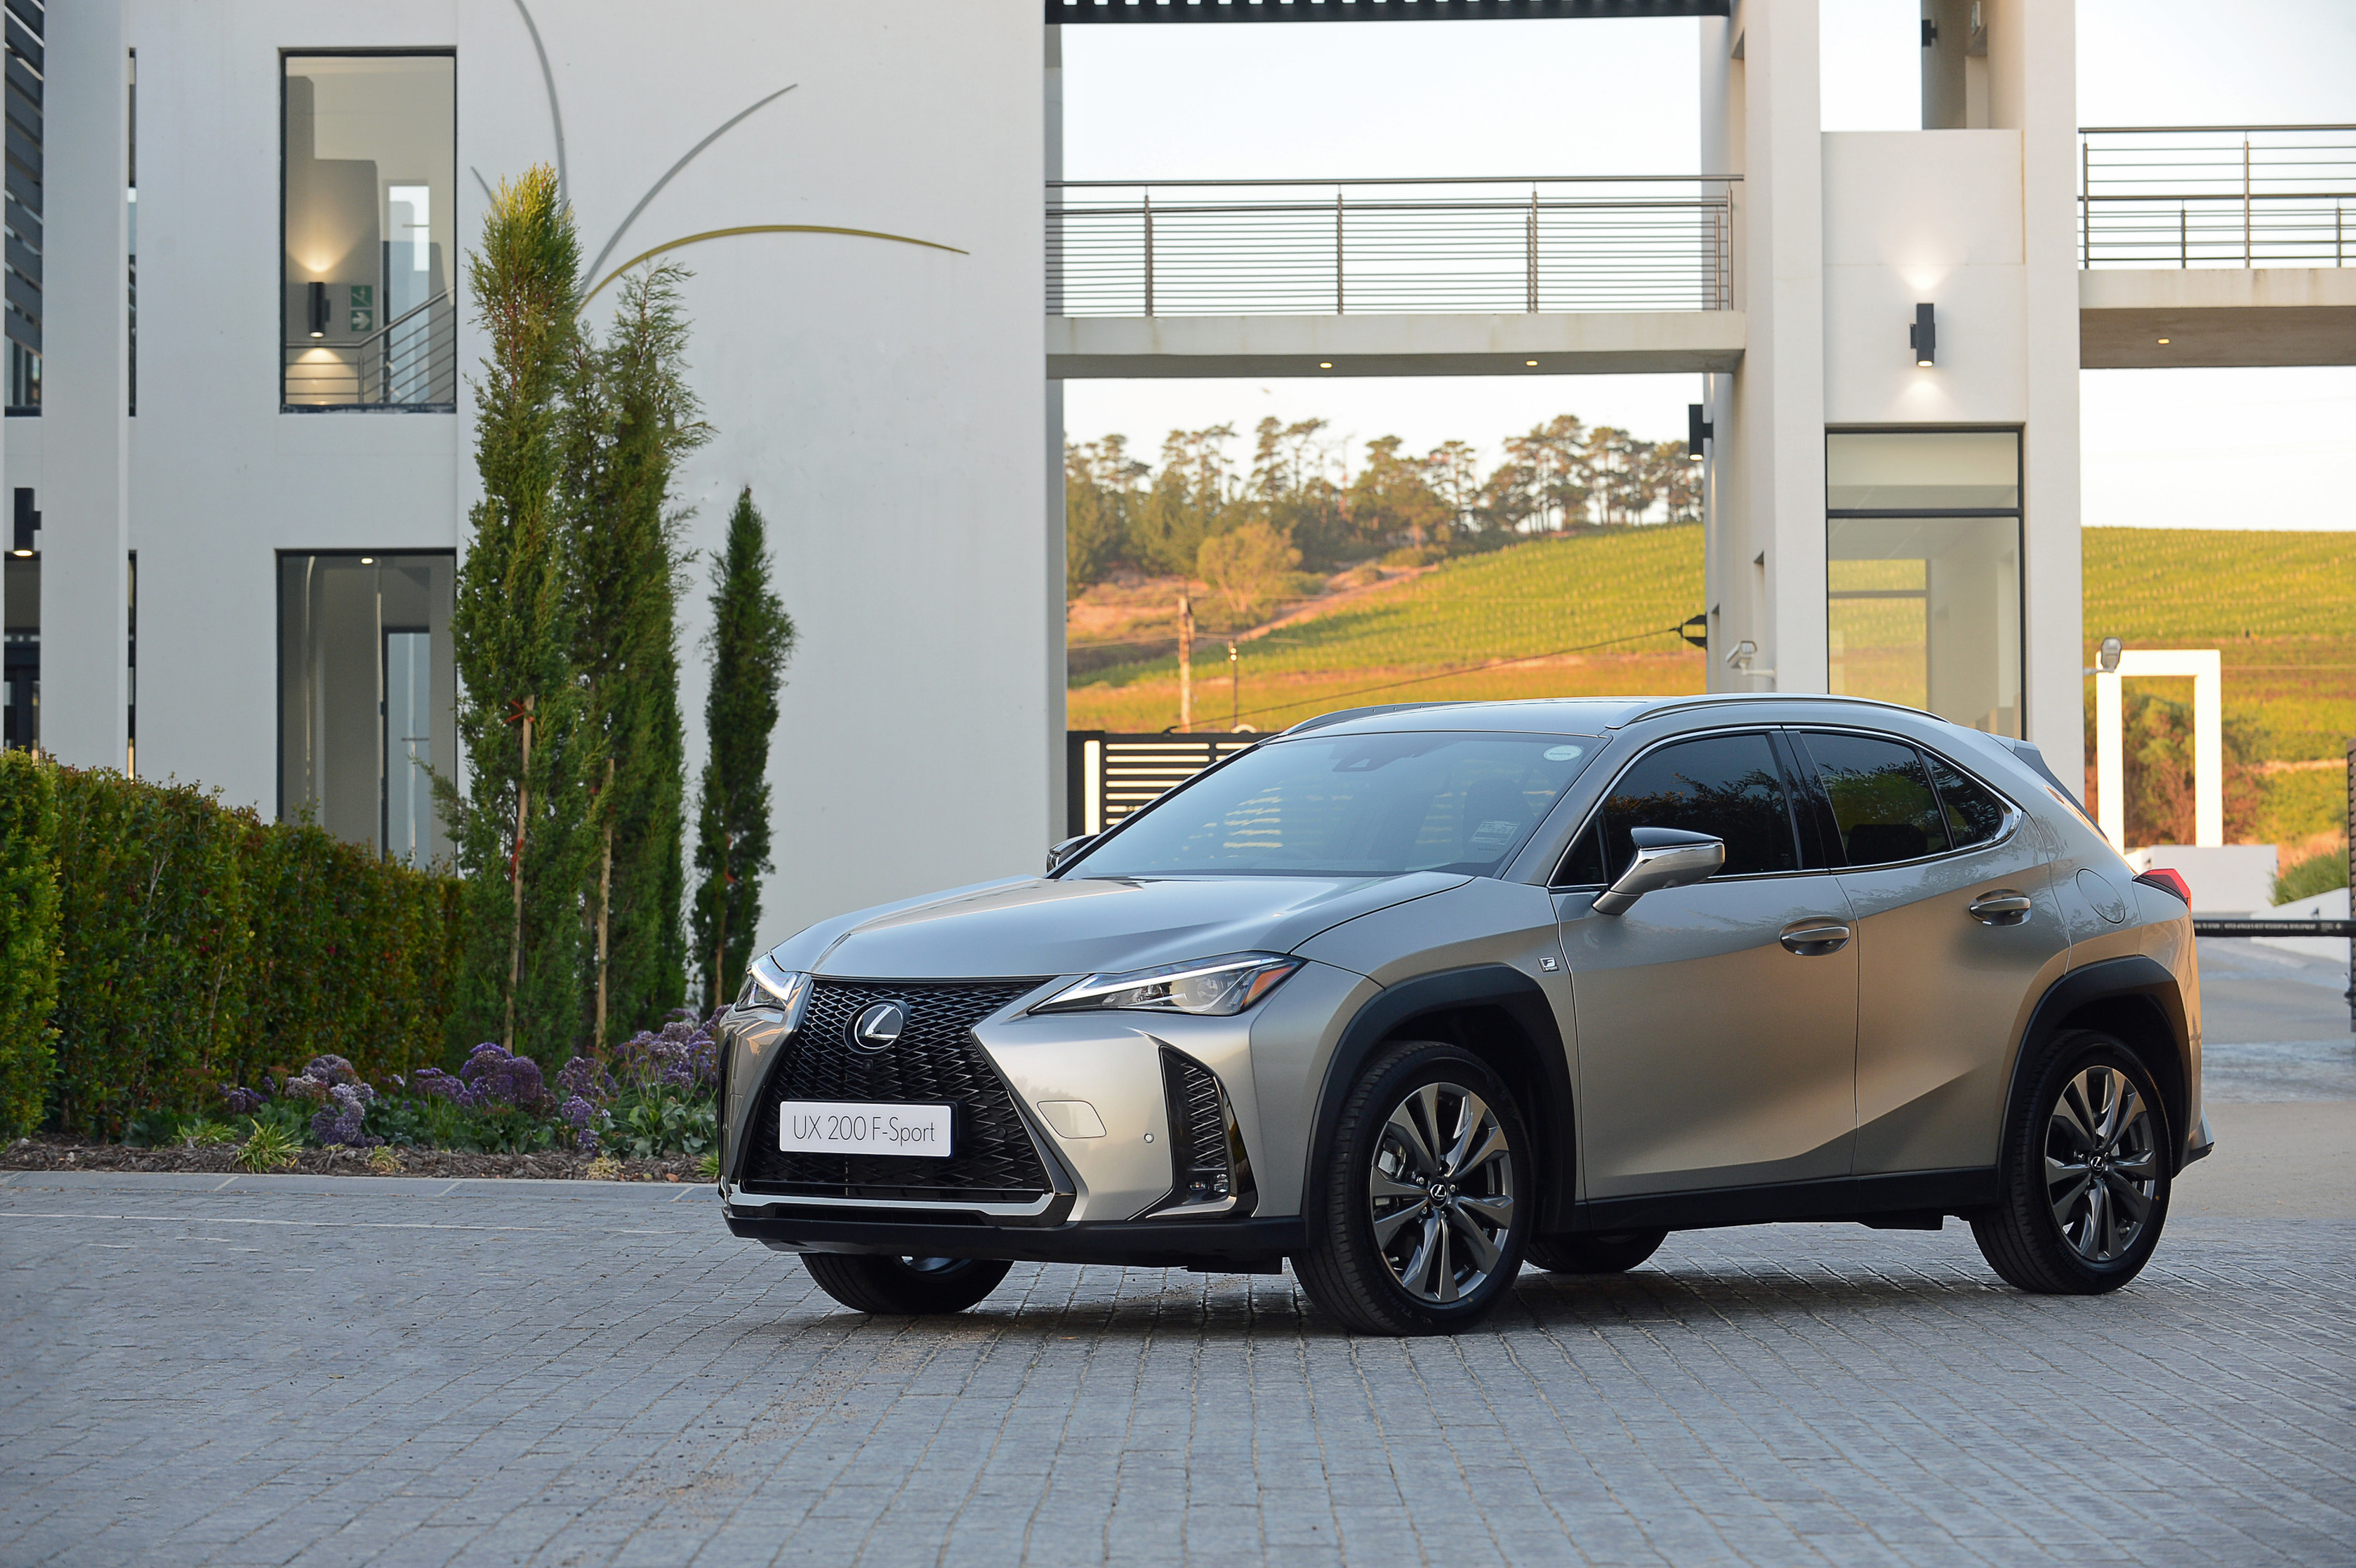 Well Technically It Is My Second Drive In The Lexus Ux You Should Recall Somewhat Taunting Post Of Trip To Stockholm Sweden Attend